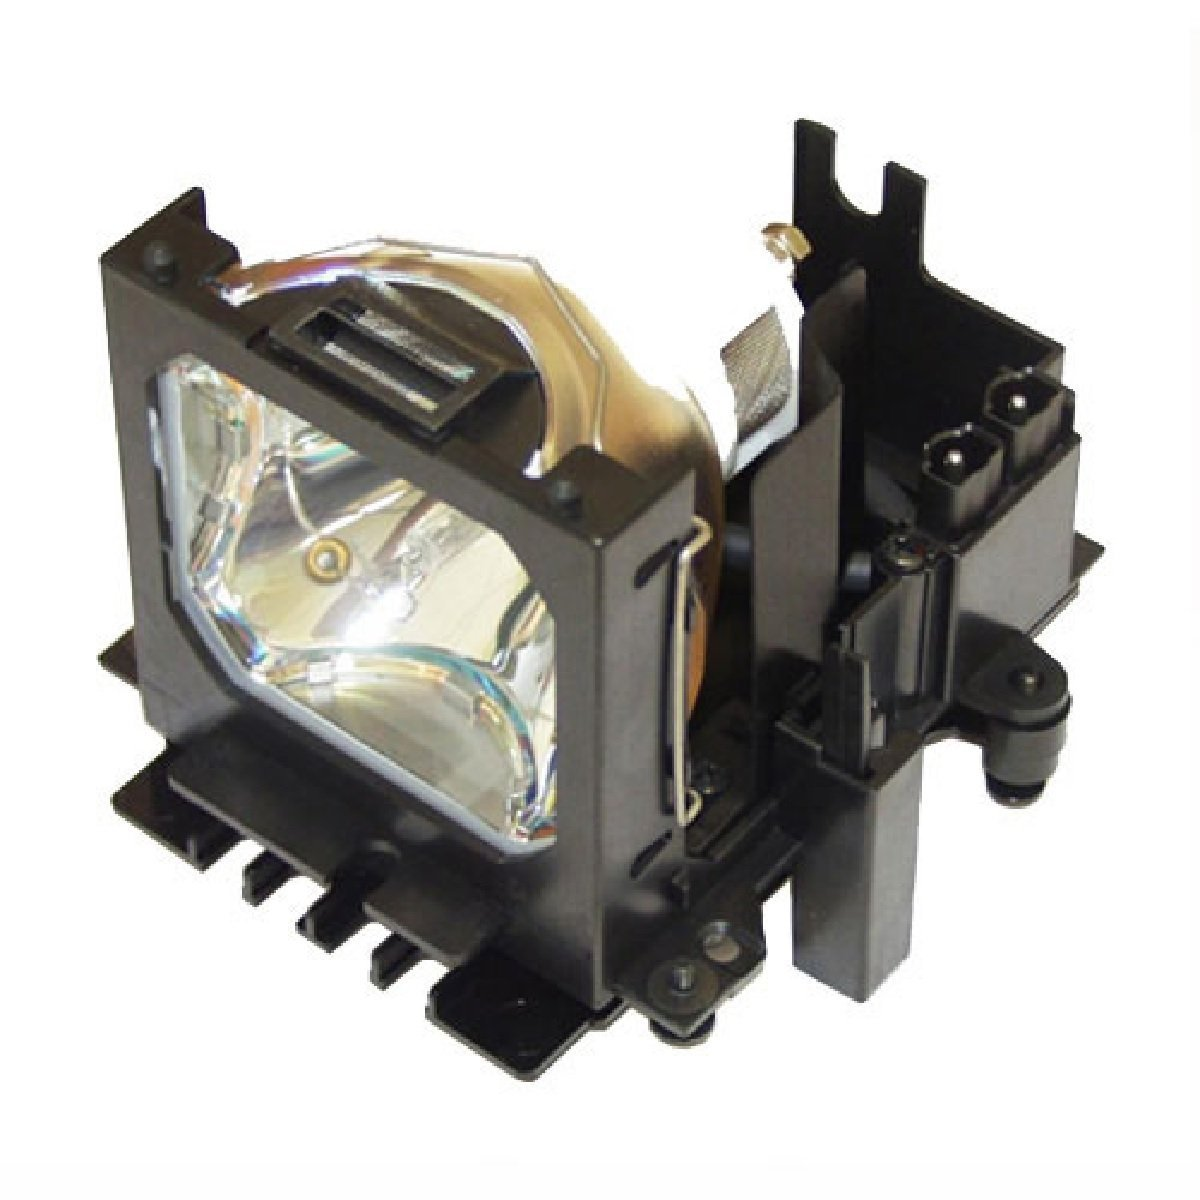 GOLDENRIVER DT00601 Replacement Lamp with Housing for Hitachi Projectors CP-X1250 CP-HX6500A CP-HX6500 CP-SX1350 CP-HX6300 CP-SX1350W